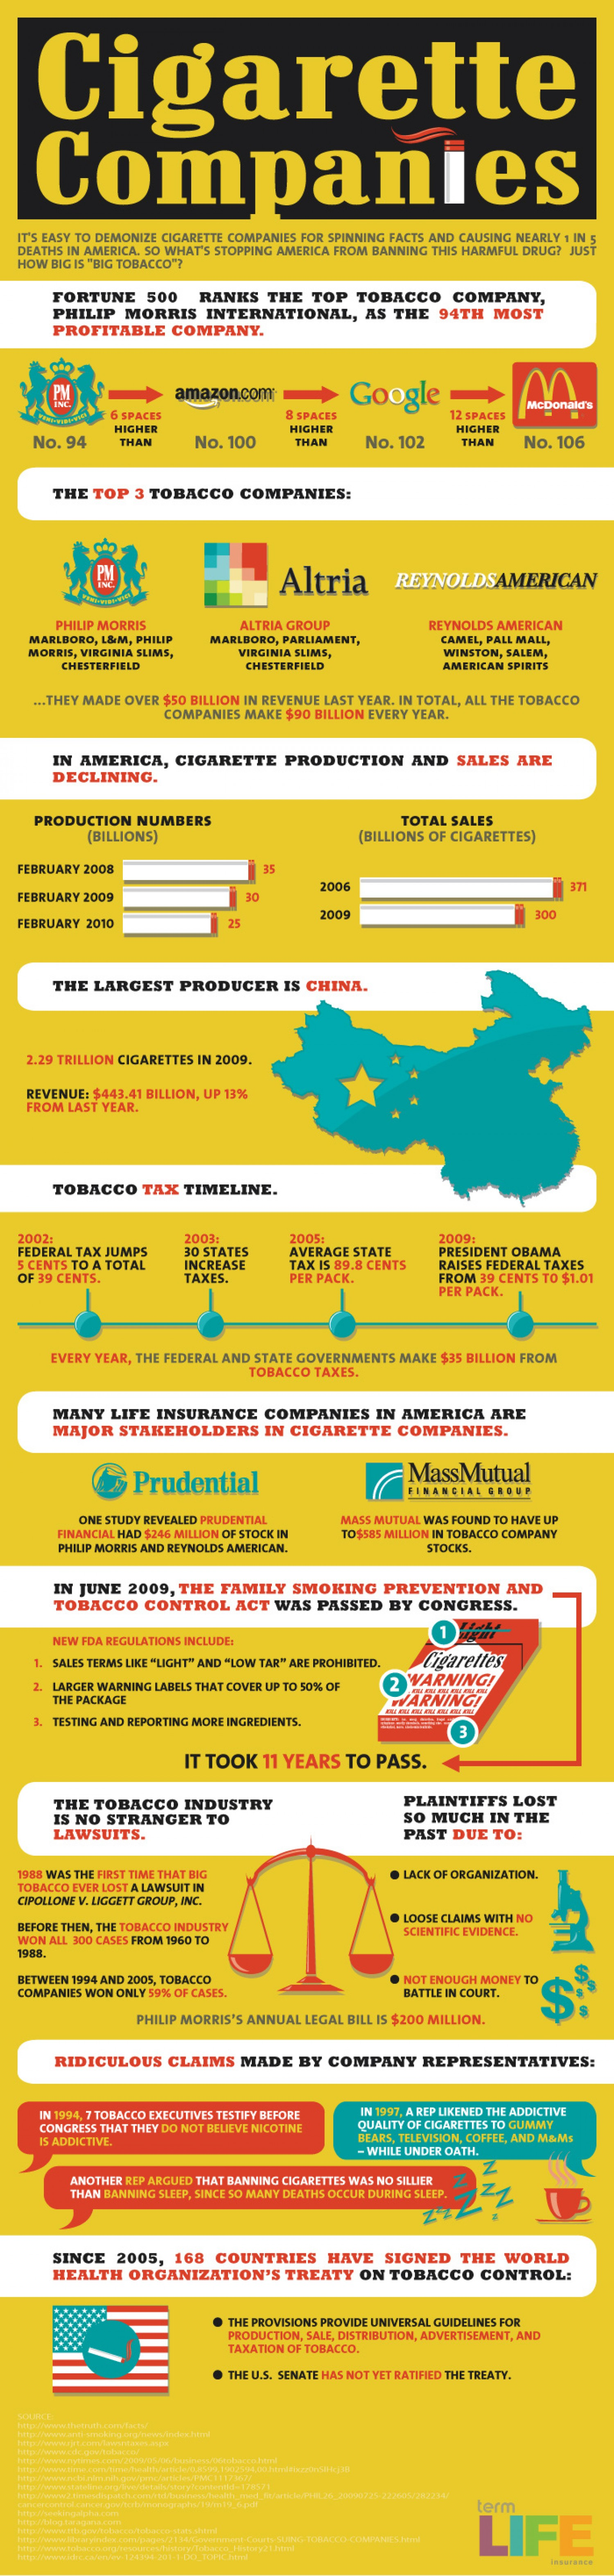 13. Cigarette Companies and the Tobacco Industry